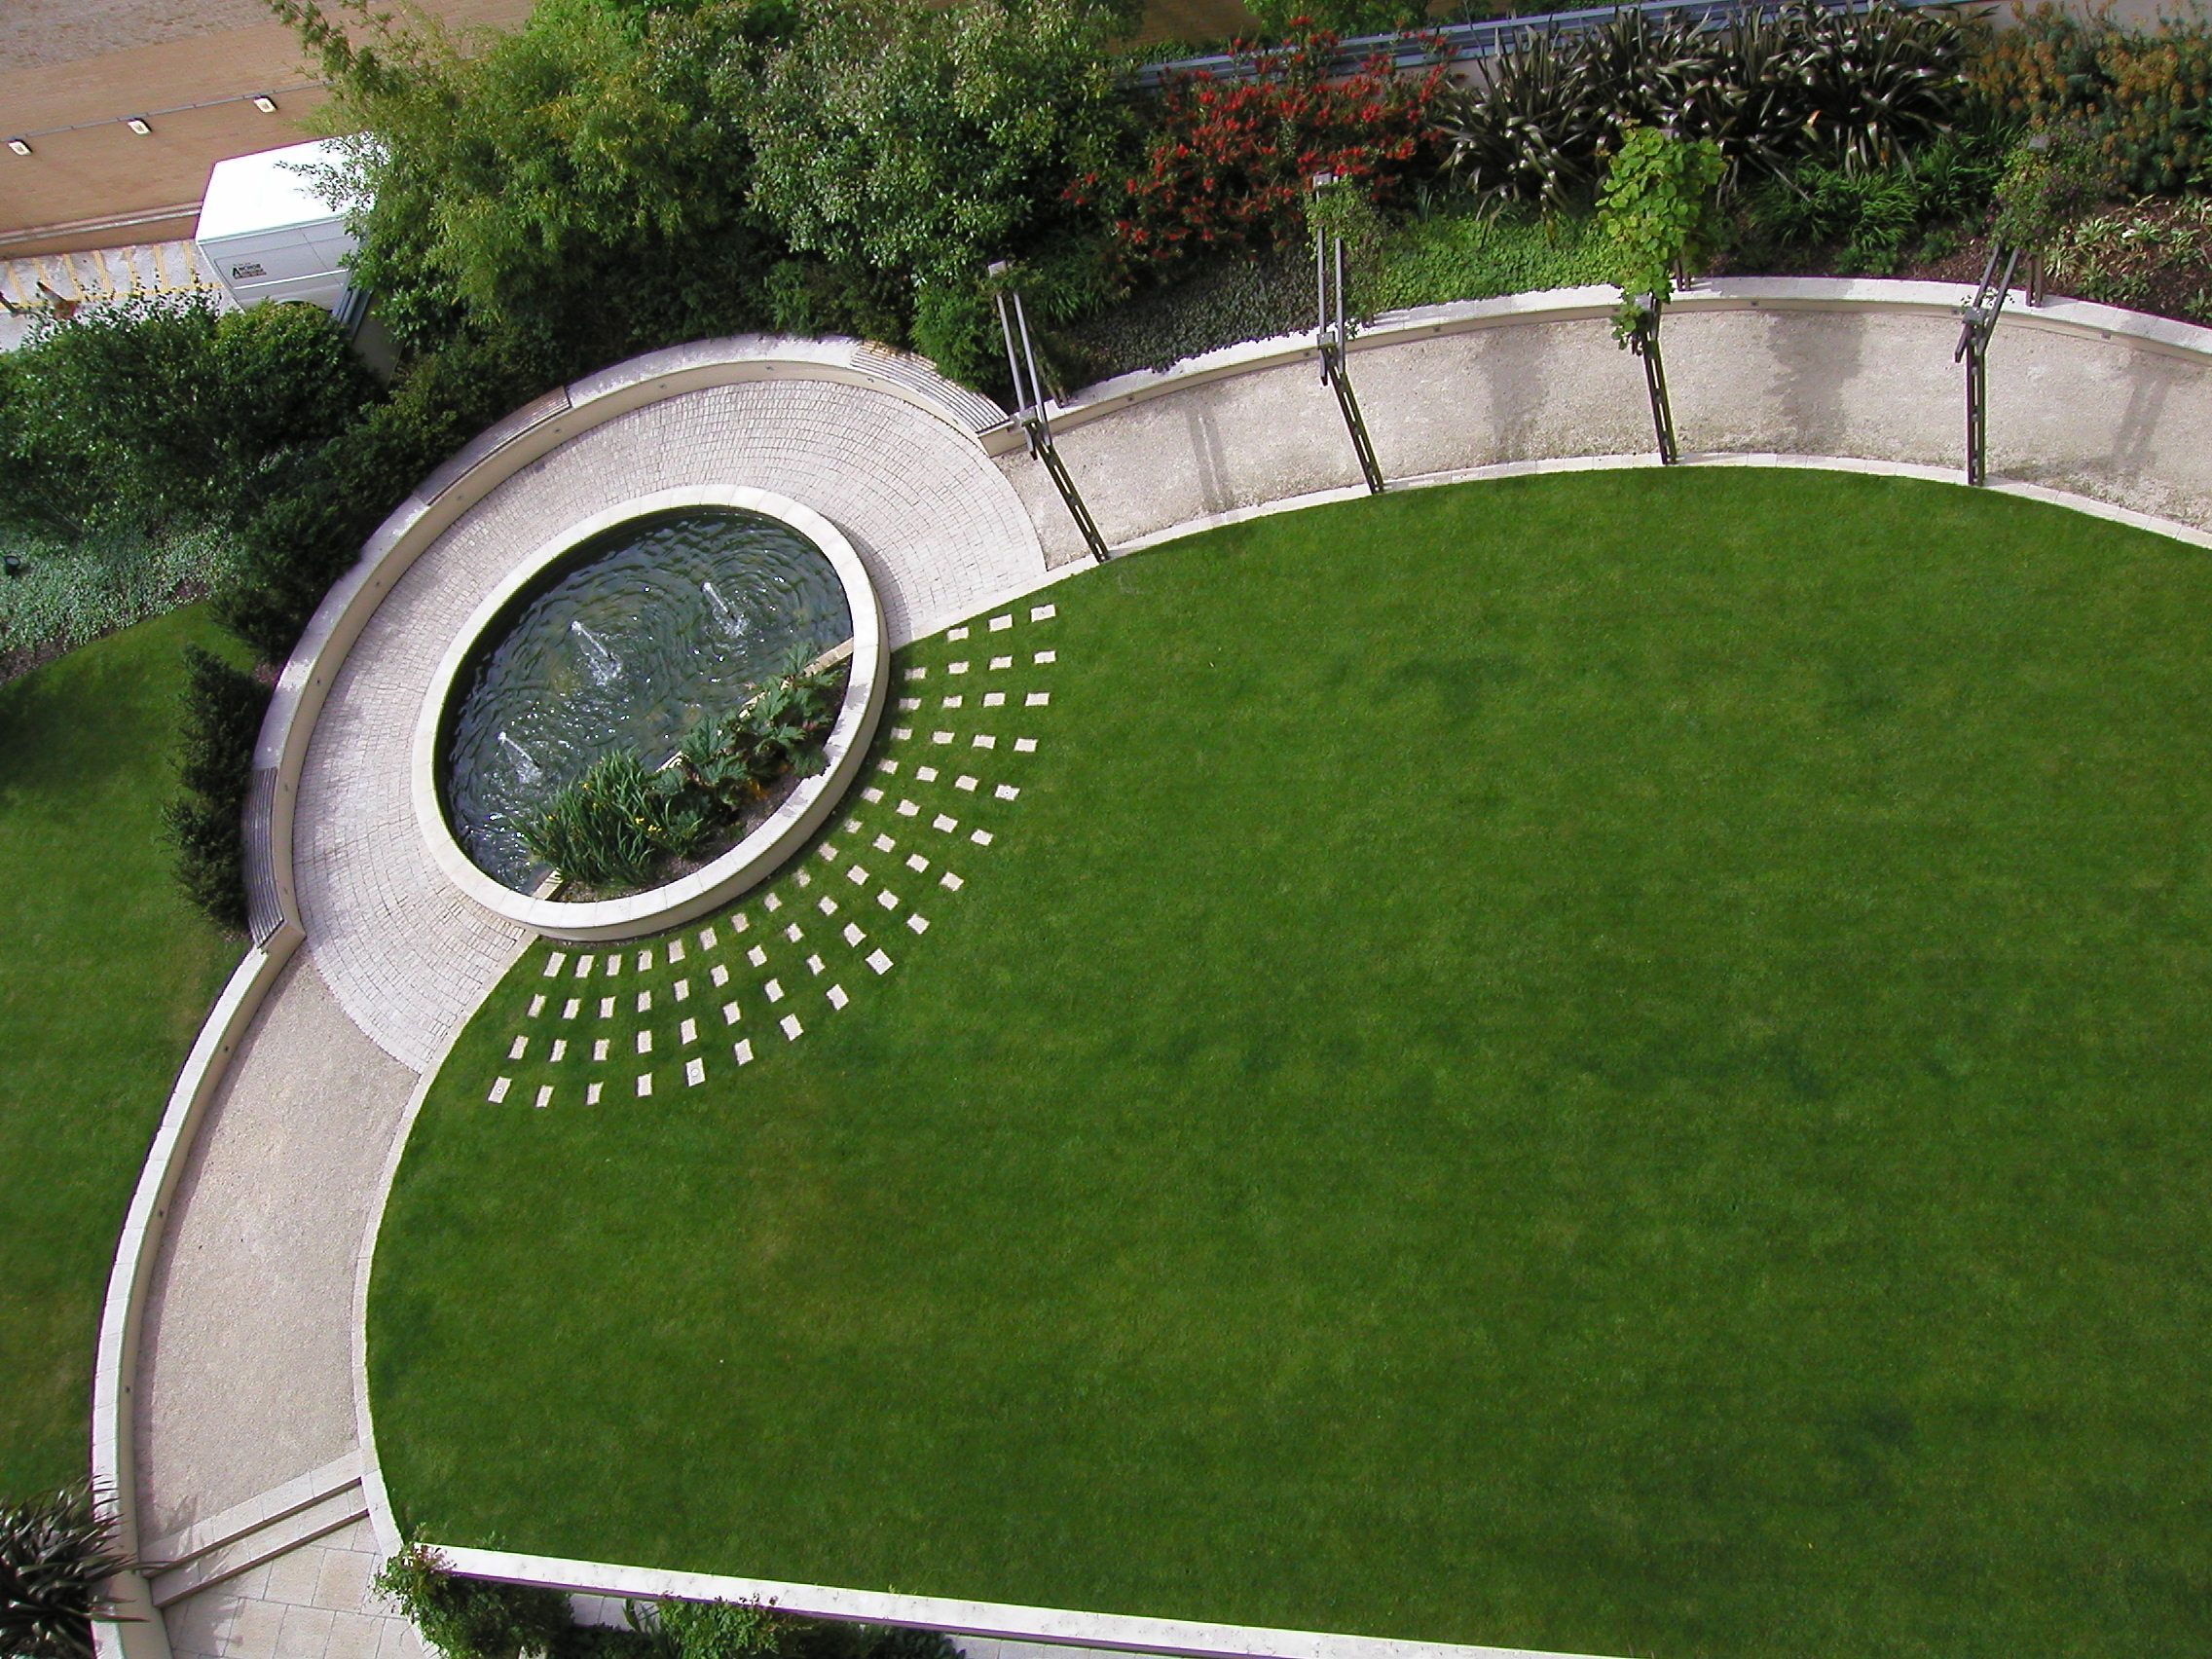 landscape design by bowles wyer the pavillion apartments the large central lawn is surrounded by a sweeping path punctuated by pergolas and a circular